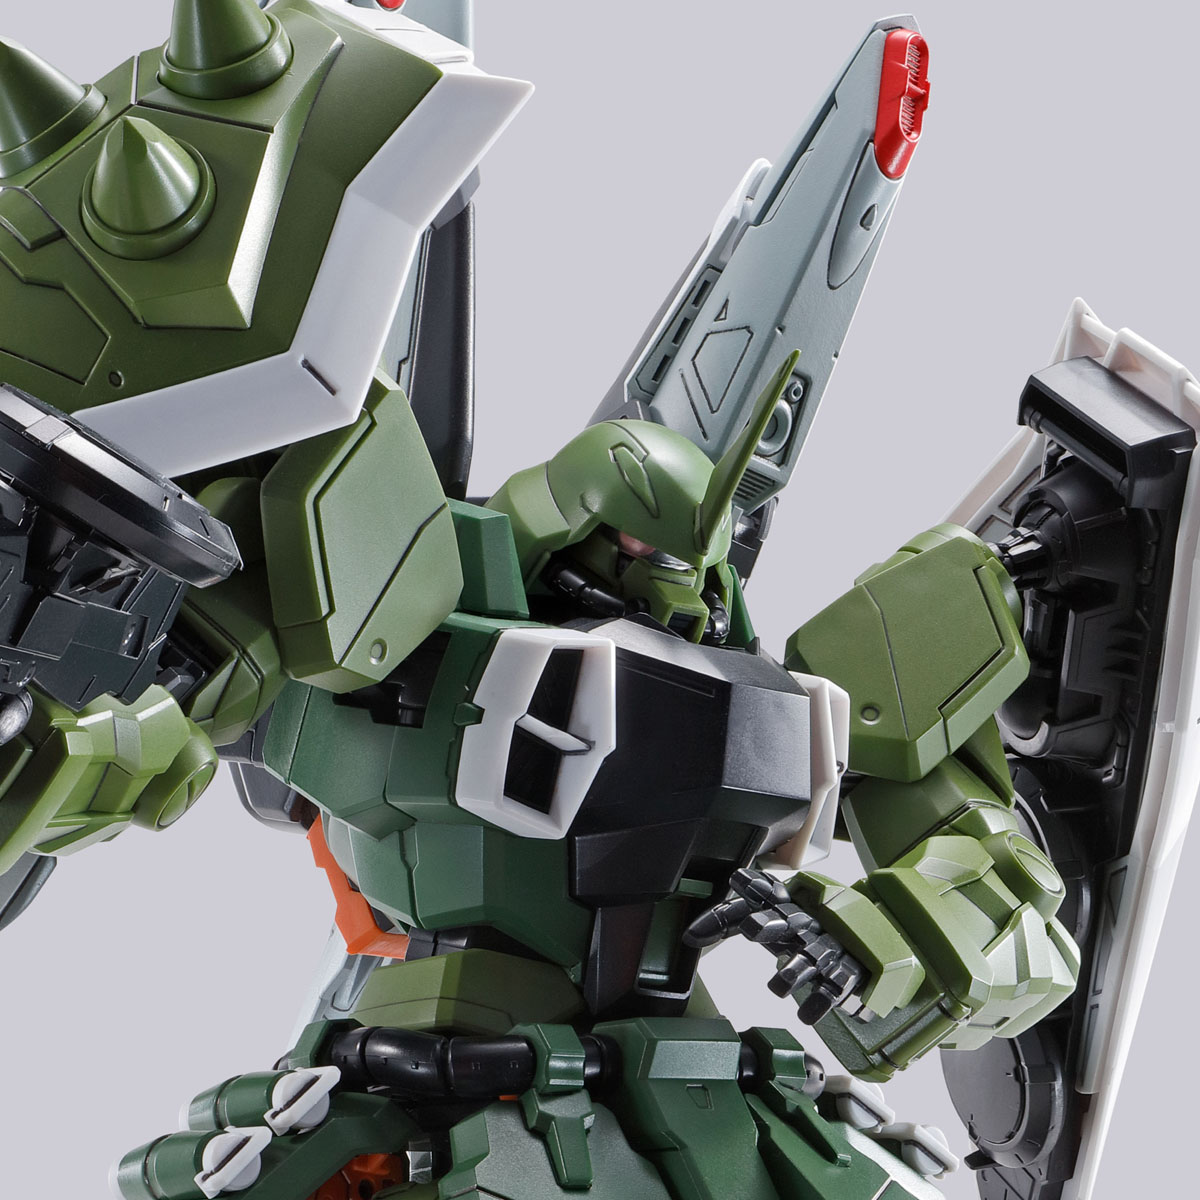 MG 1/100 BLAZE ZAKU PHANTOM / BLAZE ZAKU WARRIOR